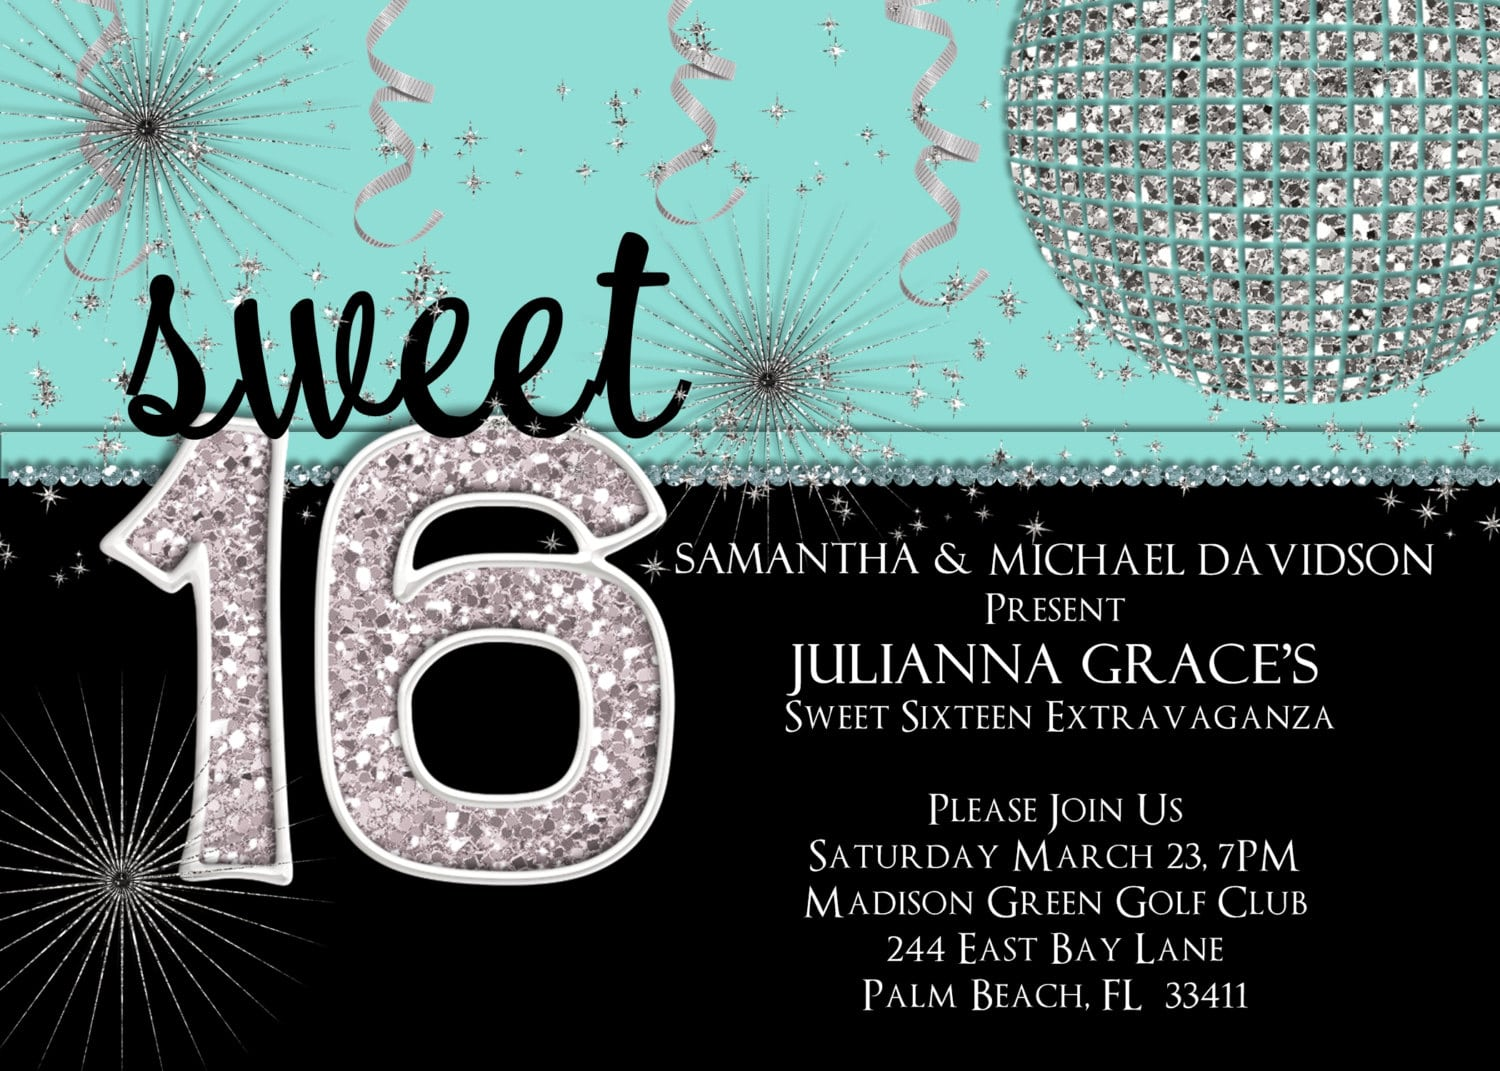 Sweet 16 Party Invitation Templates - Mickey Mouse Invitations Templates